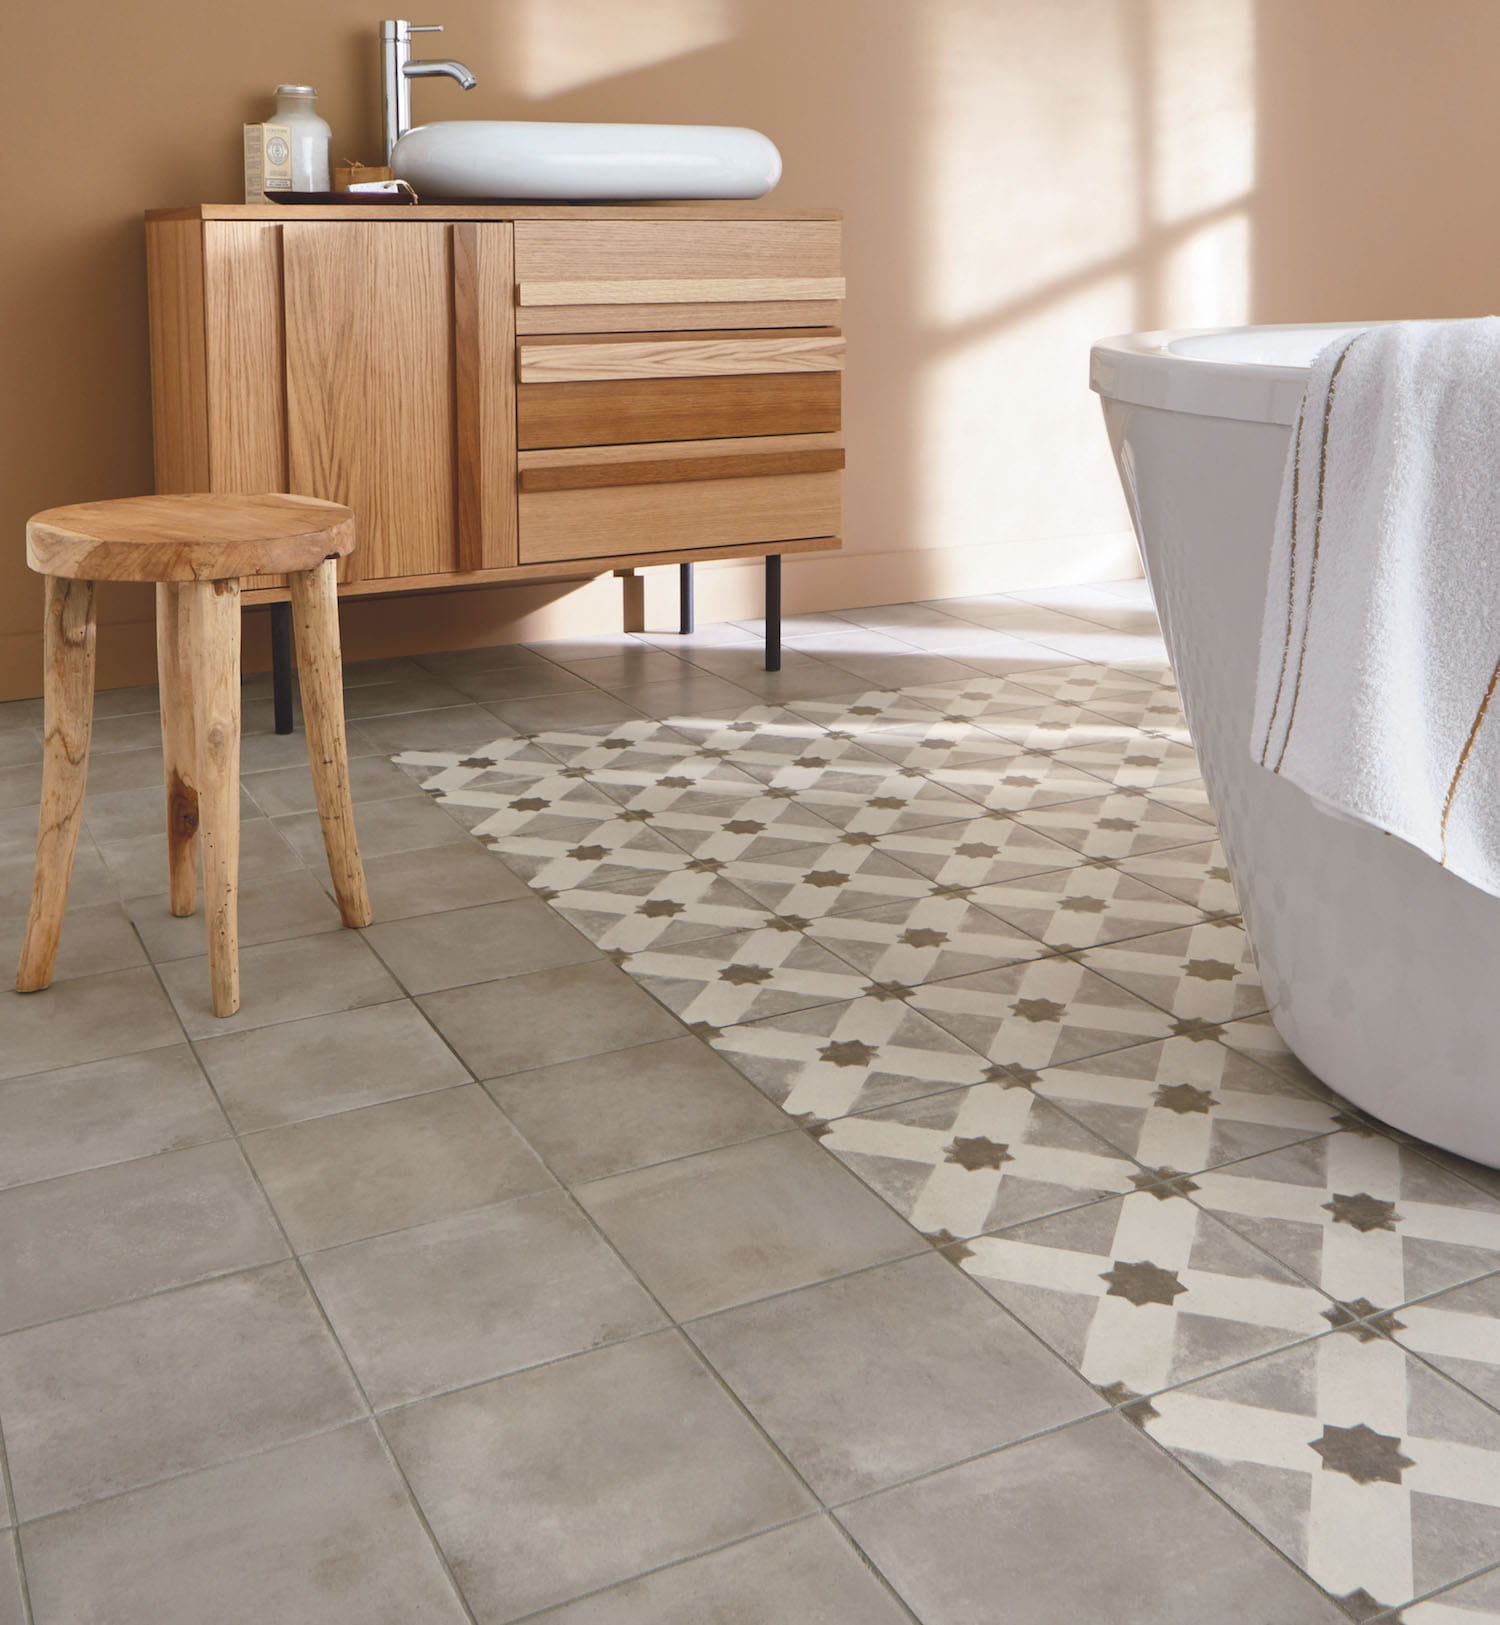 Le mix carrelage et carreaux de ciment for Pose carrelage salle de bain sol